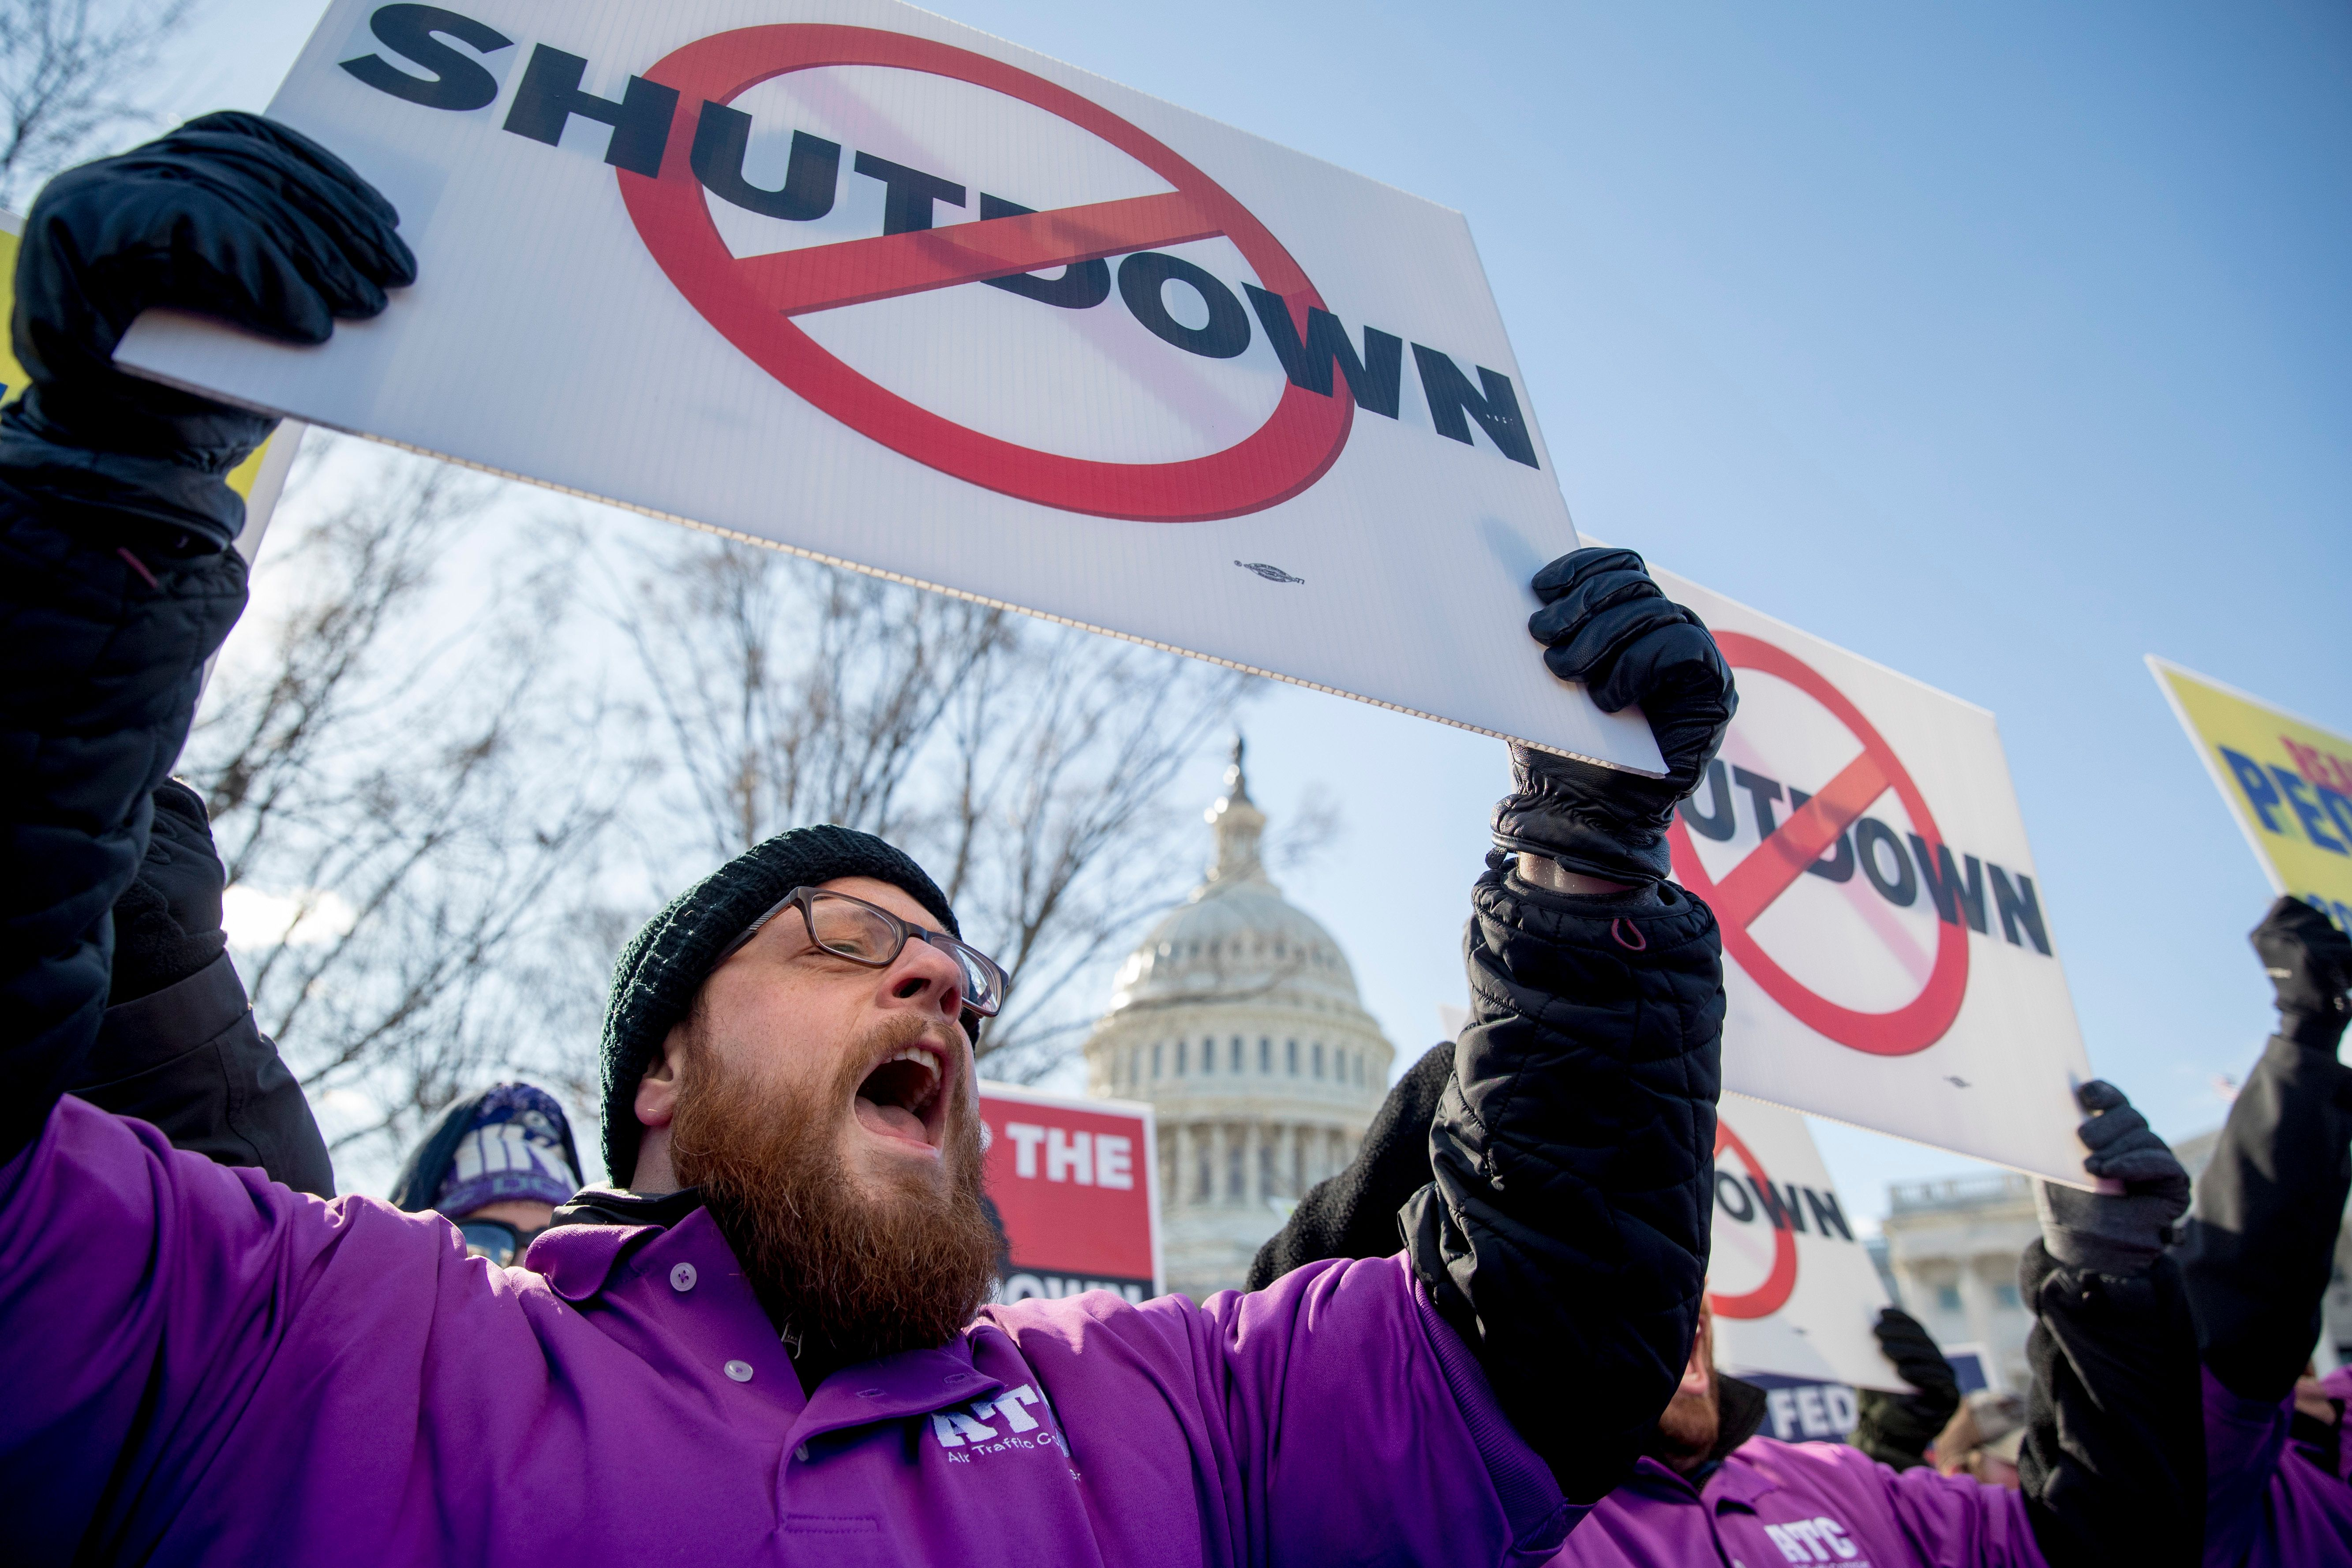 """The Capitol Dome is visible behind Grant Mulkey with the National Air Traffic Controllers Association and others who hold signs and shout in unison to open the government """"NOW!"""" as a call and response as Air Traffic and pilot unions protest the government shutdown on Capitol Hill in Washington, Thursday, Jan. 10, 2019. (AP Photo/Andrew Harnik)"""